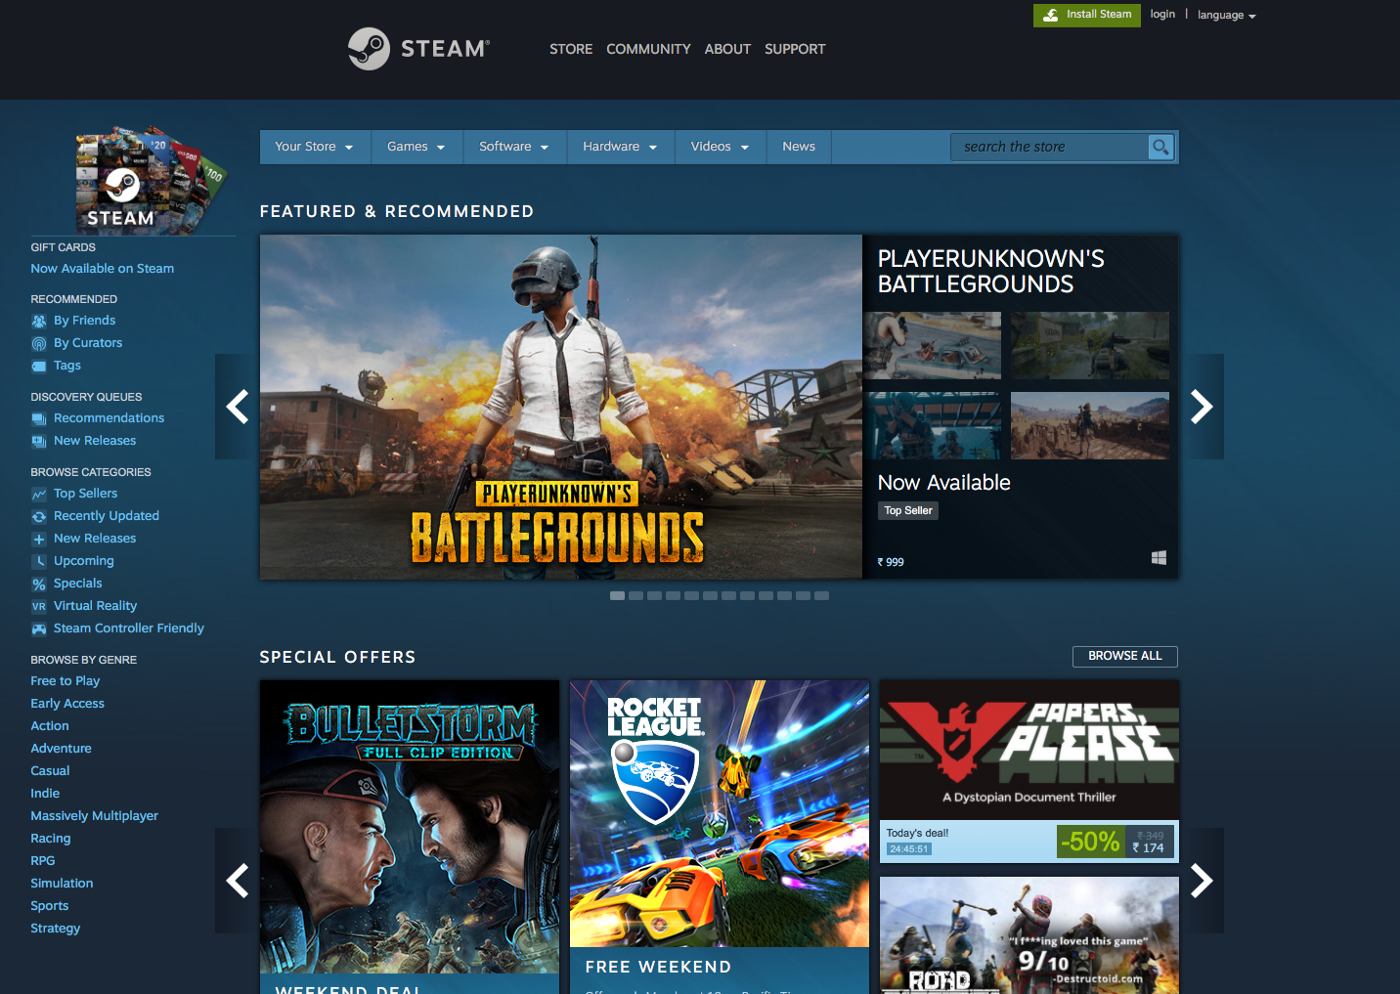 Redesigning the Steam mobile experience — a UX case study